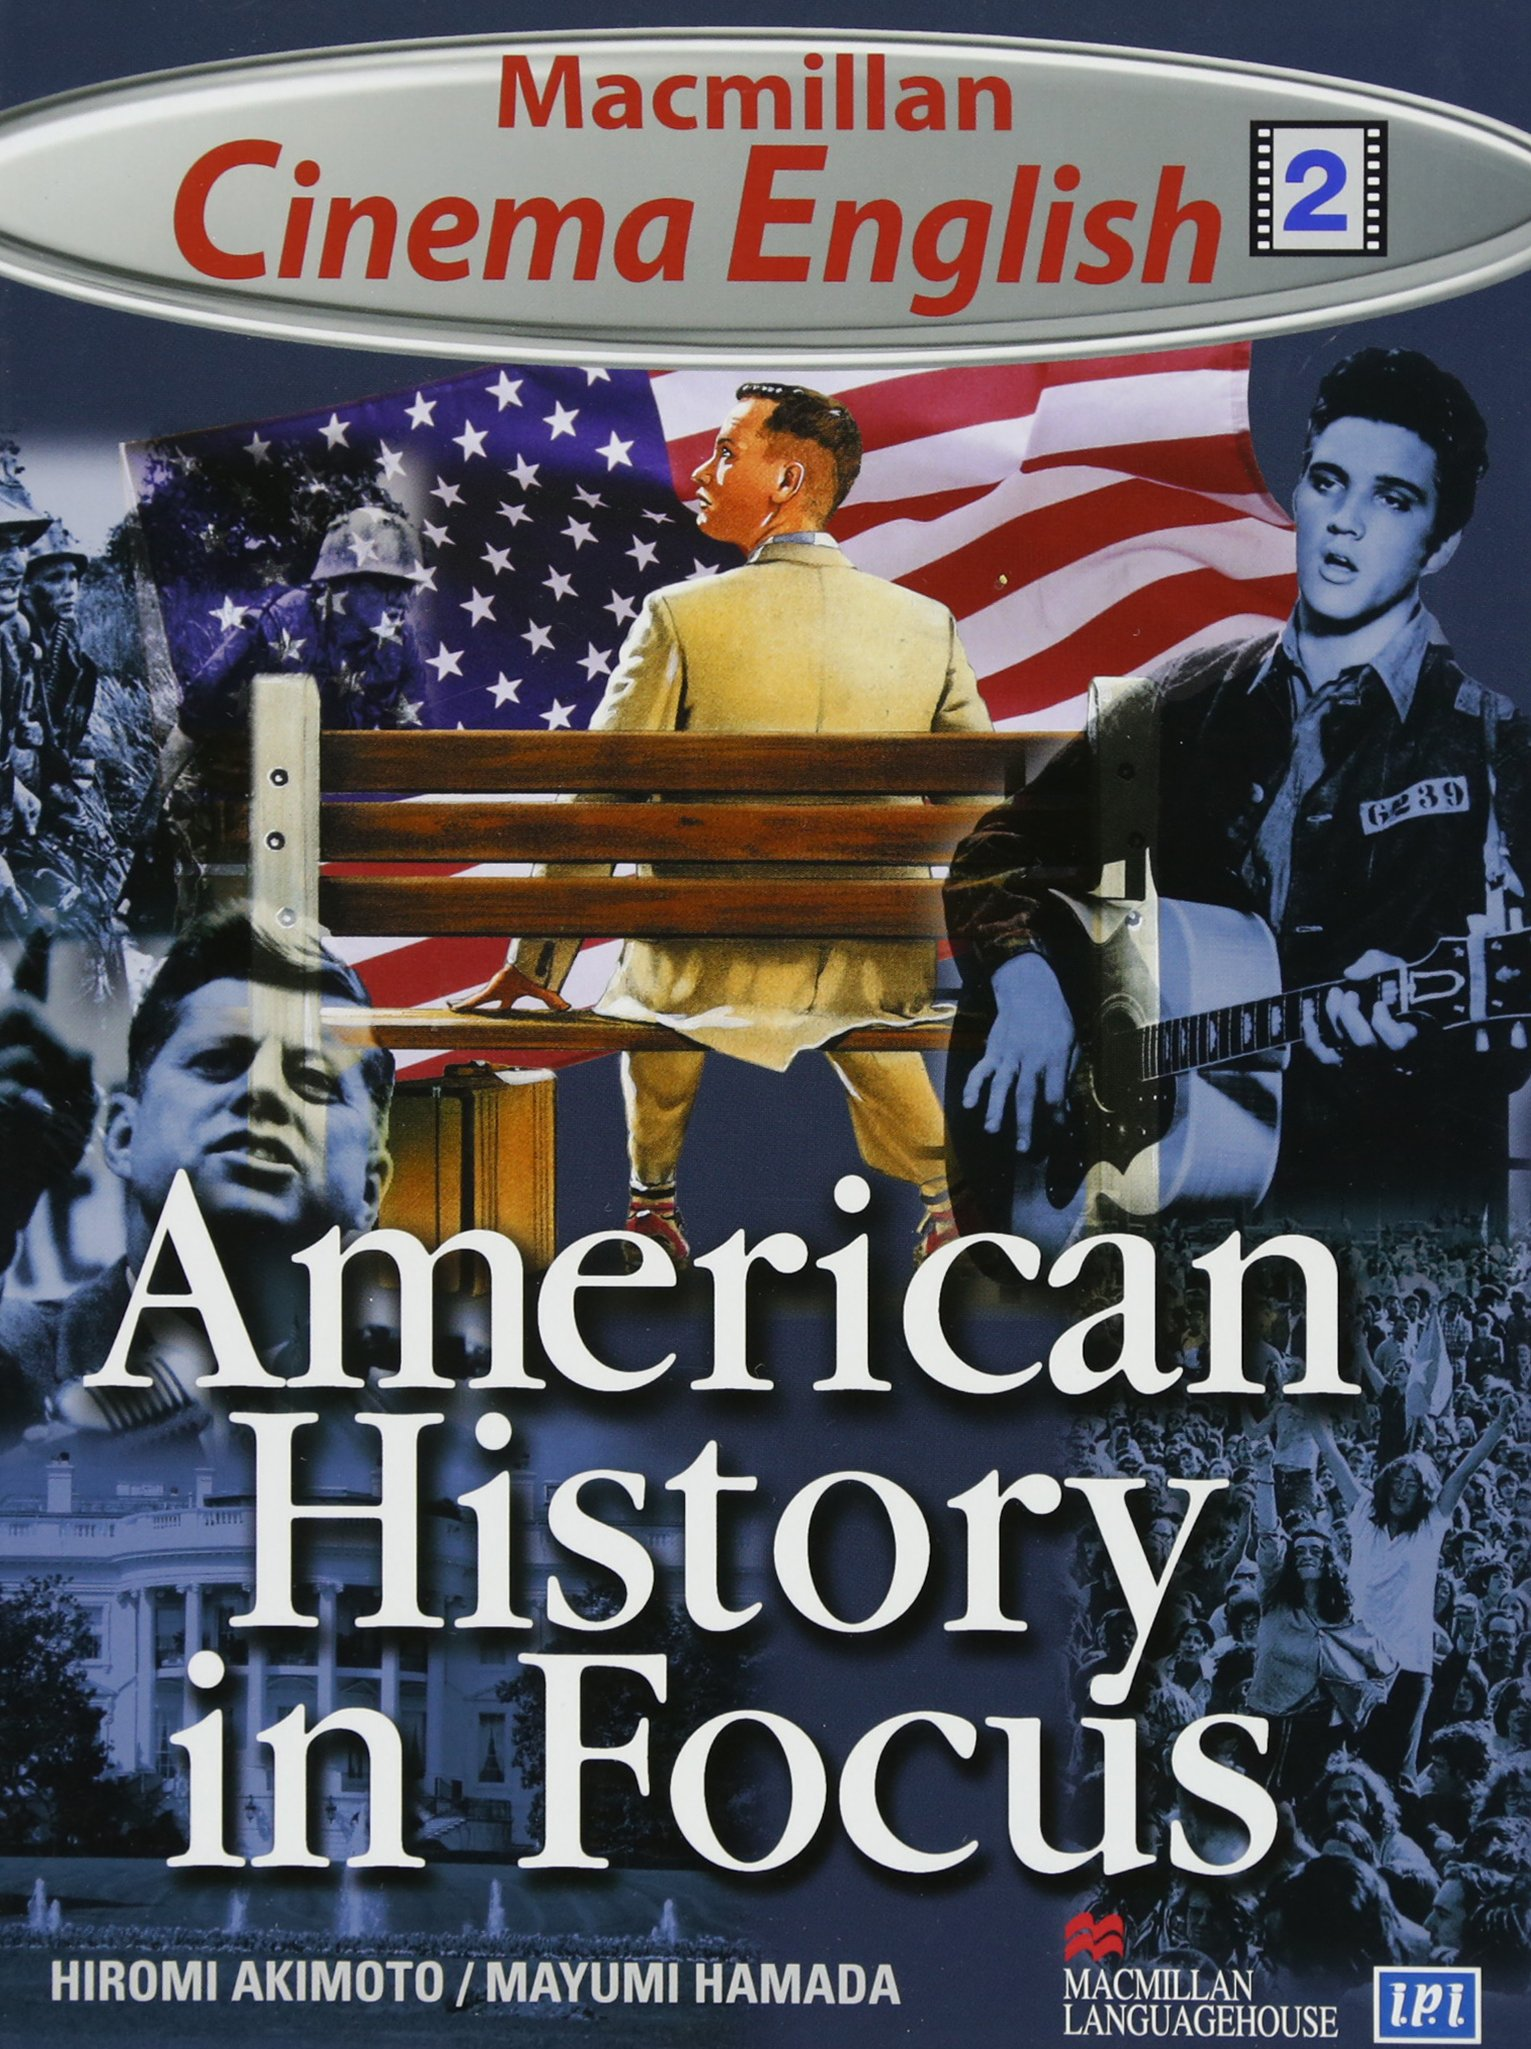 american history in focus student book macmillan cinema english